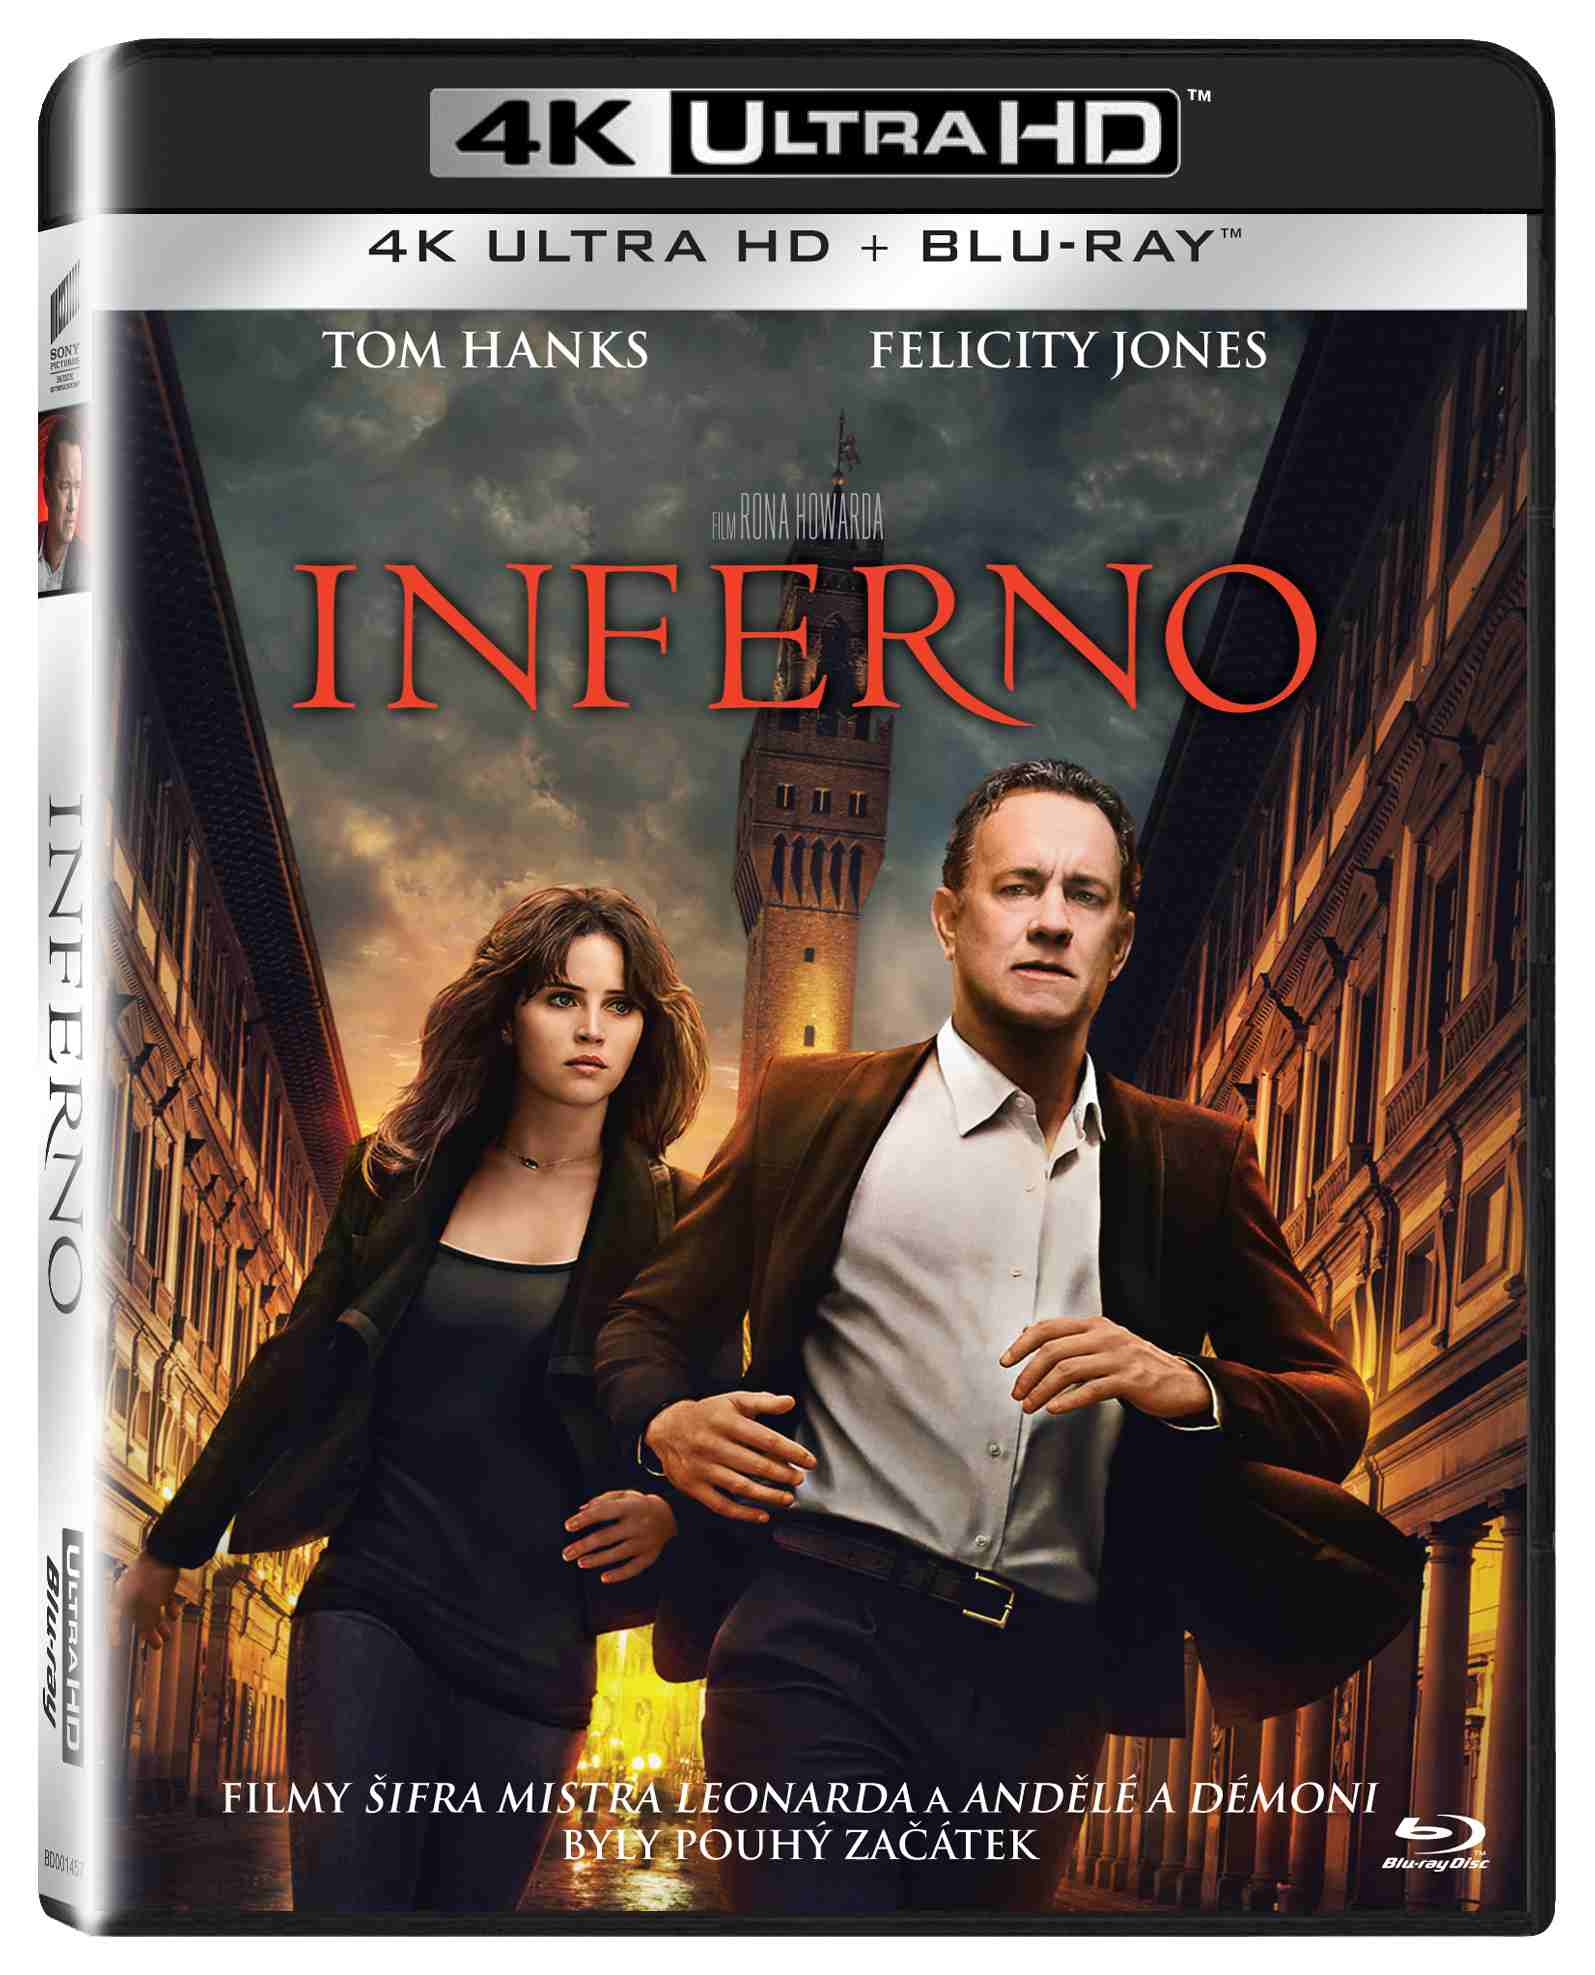 INFERNO (4K ULTRA HD) - UHD Blu-ray + Blu-ray